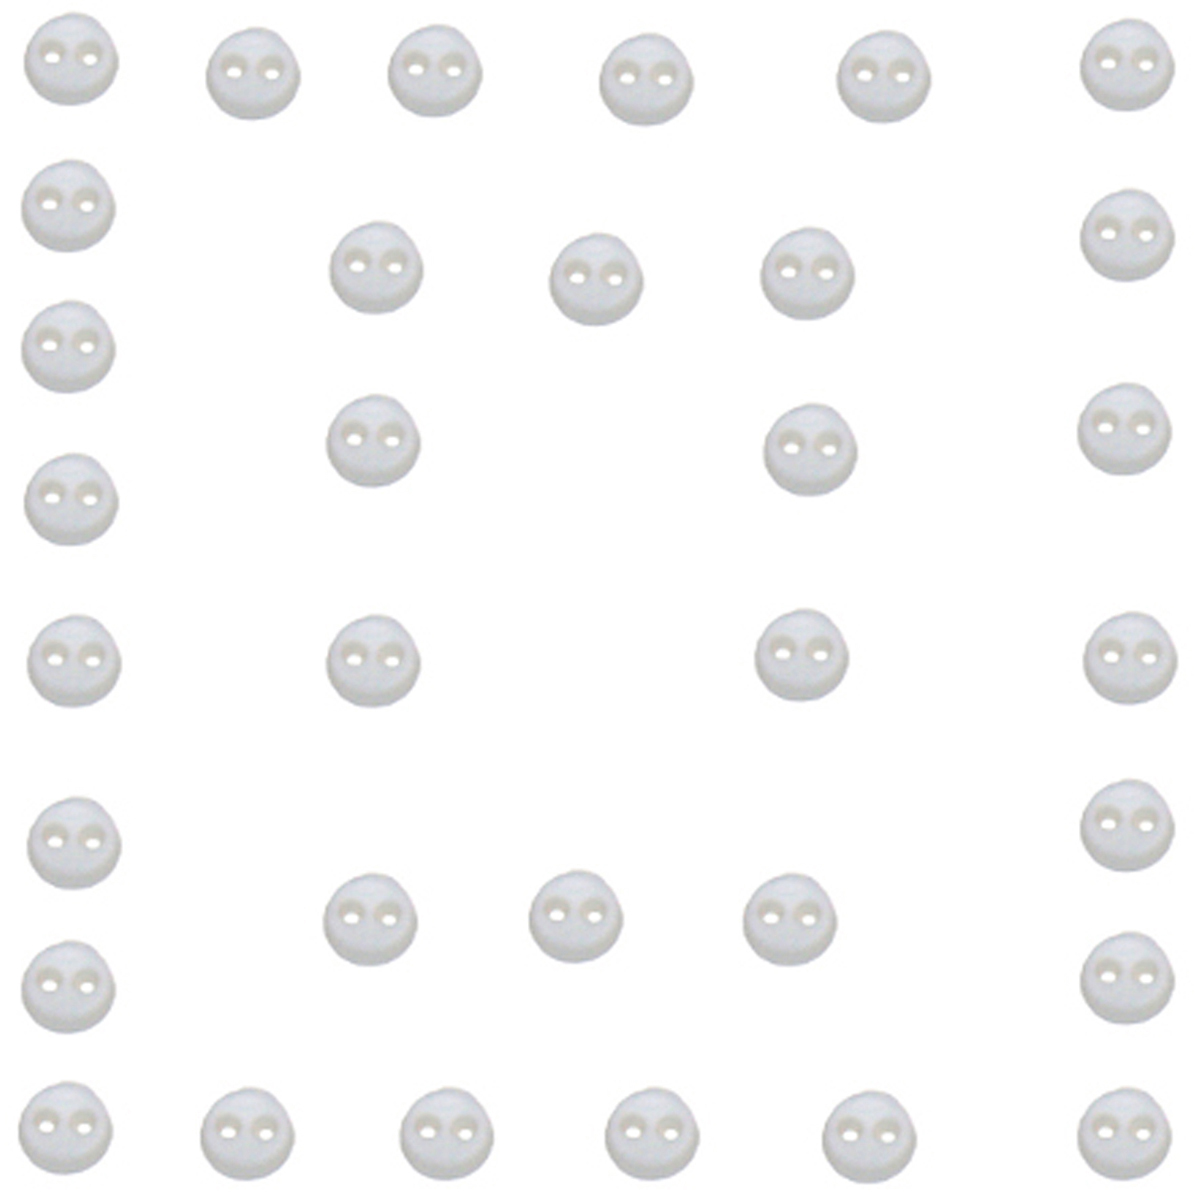 Dress It Up Embellishments, Micro Mini Round Buttons - Whi